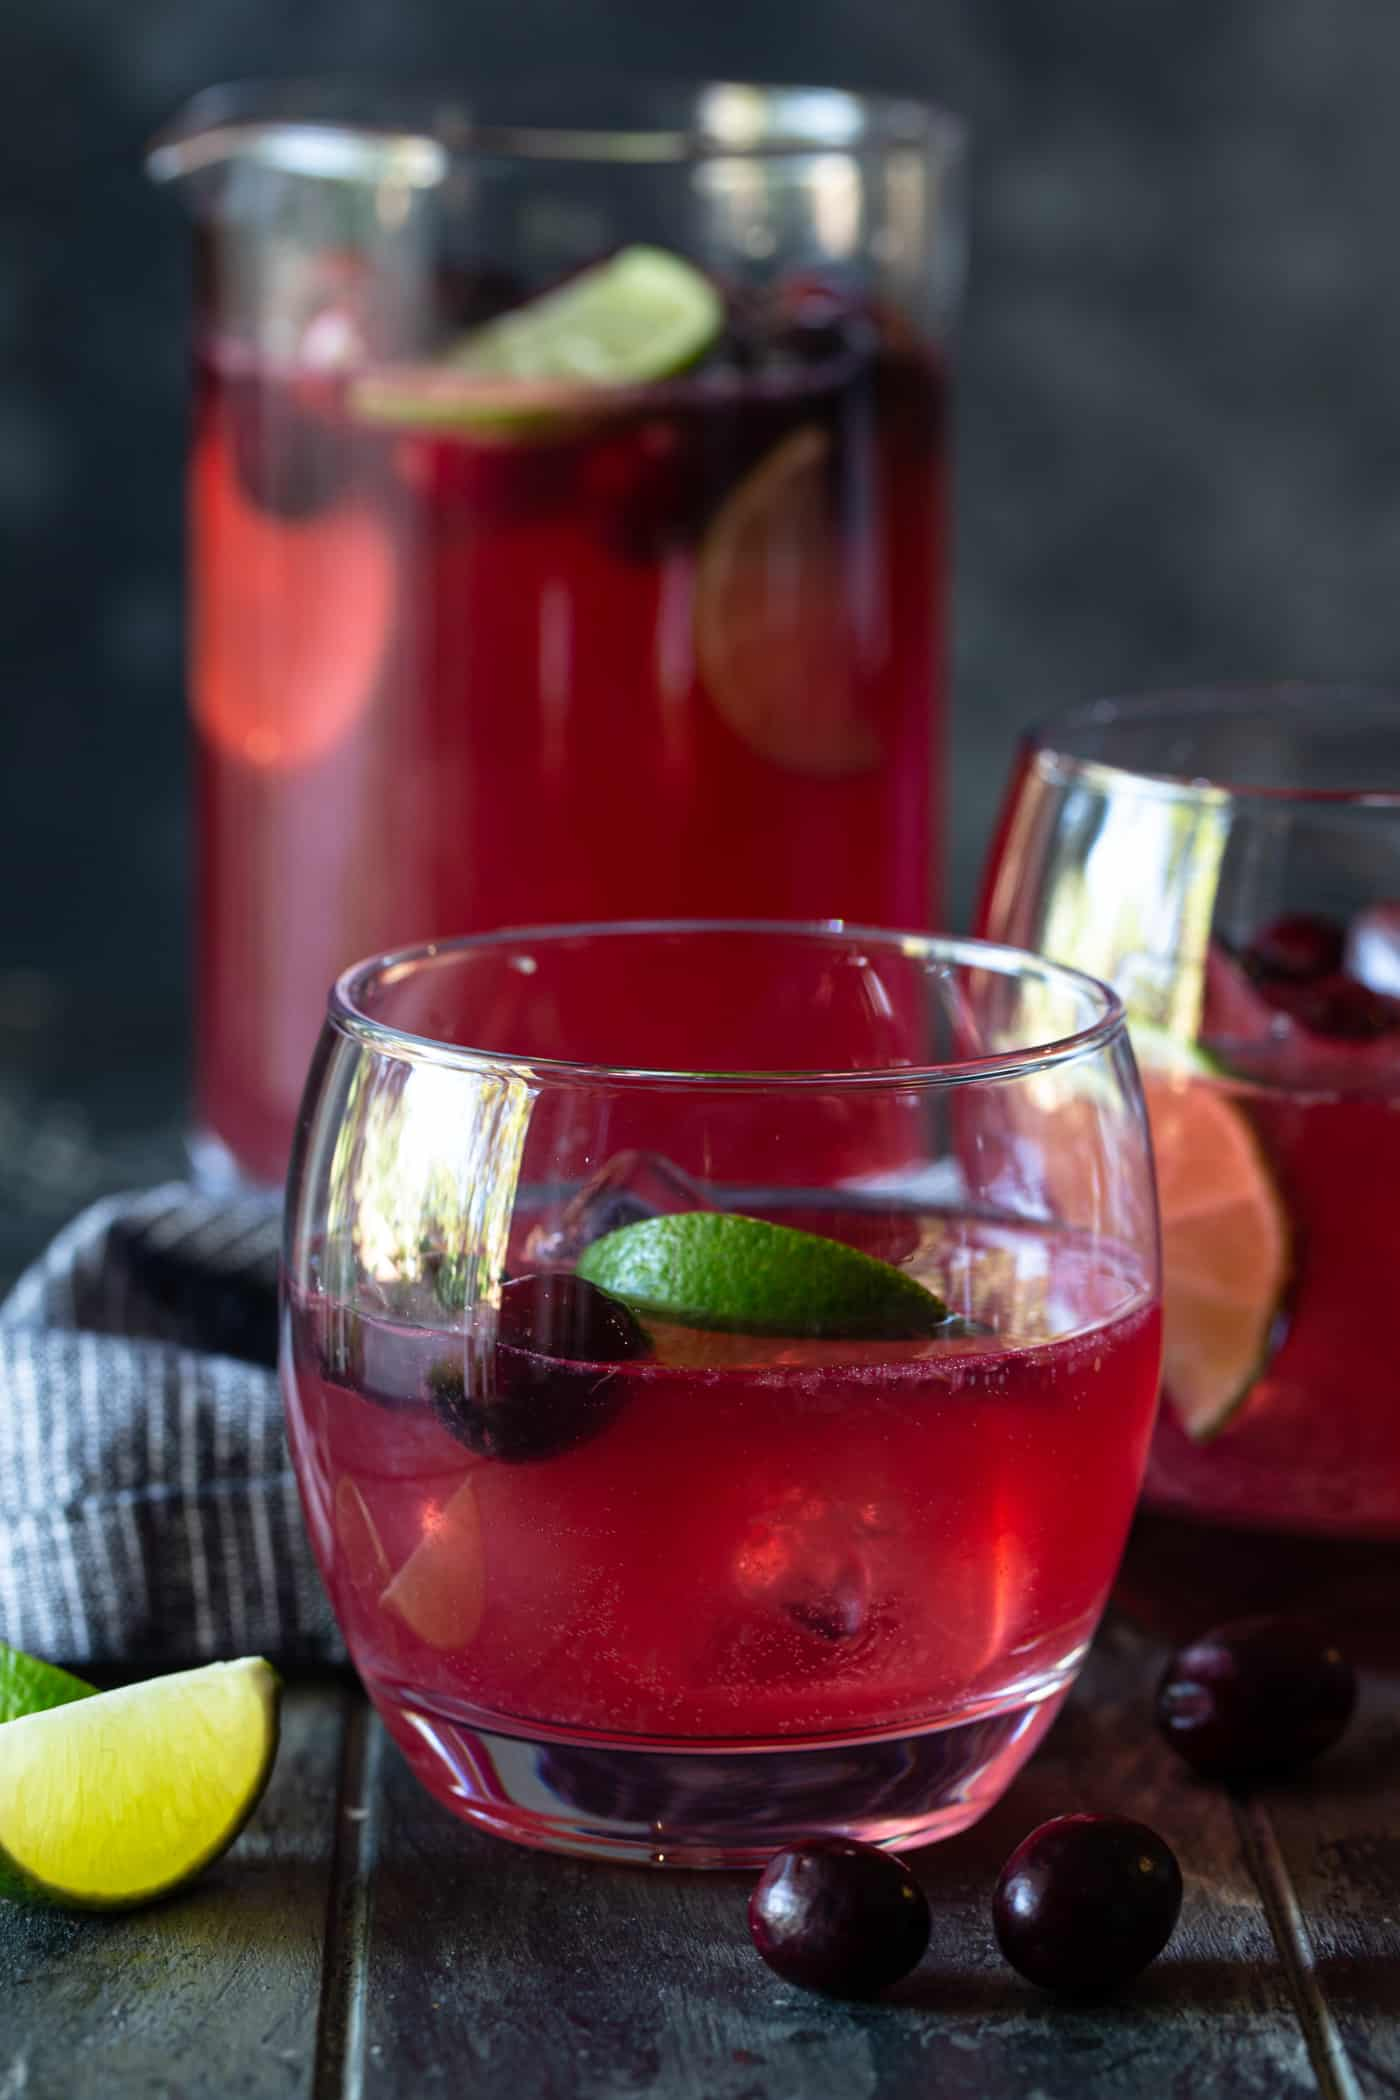 A pitcher and low ball glass filled with Punch and garnished with fresh lime wedges and fresh cranberries.